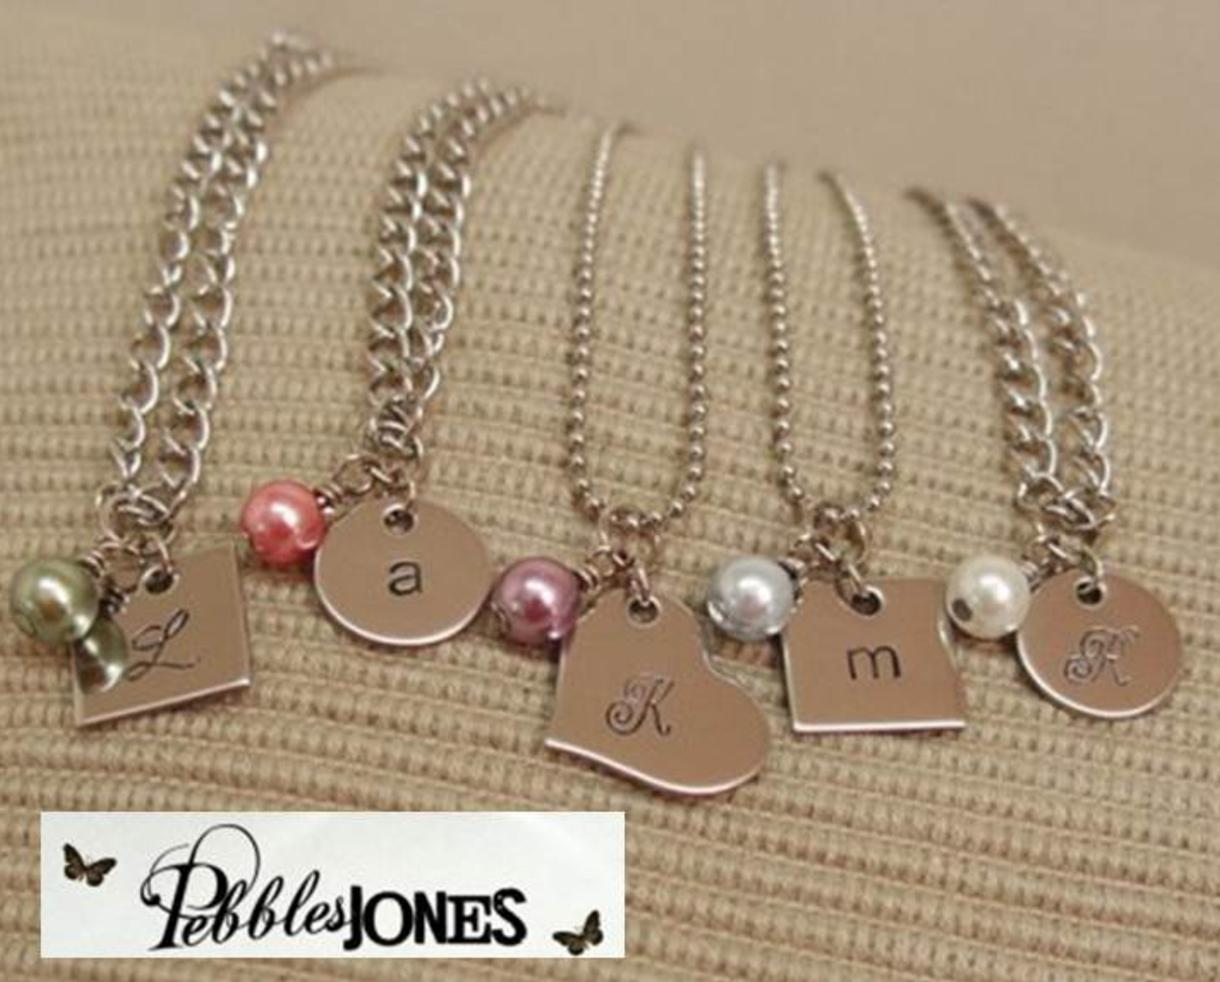 $10 for Initial Necklace w/Colored Glass Bead - Shipped! (40% Off!)